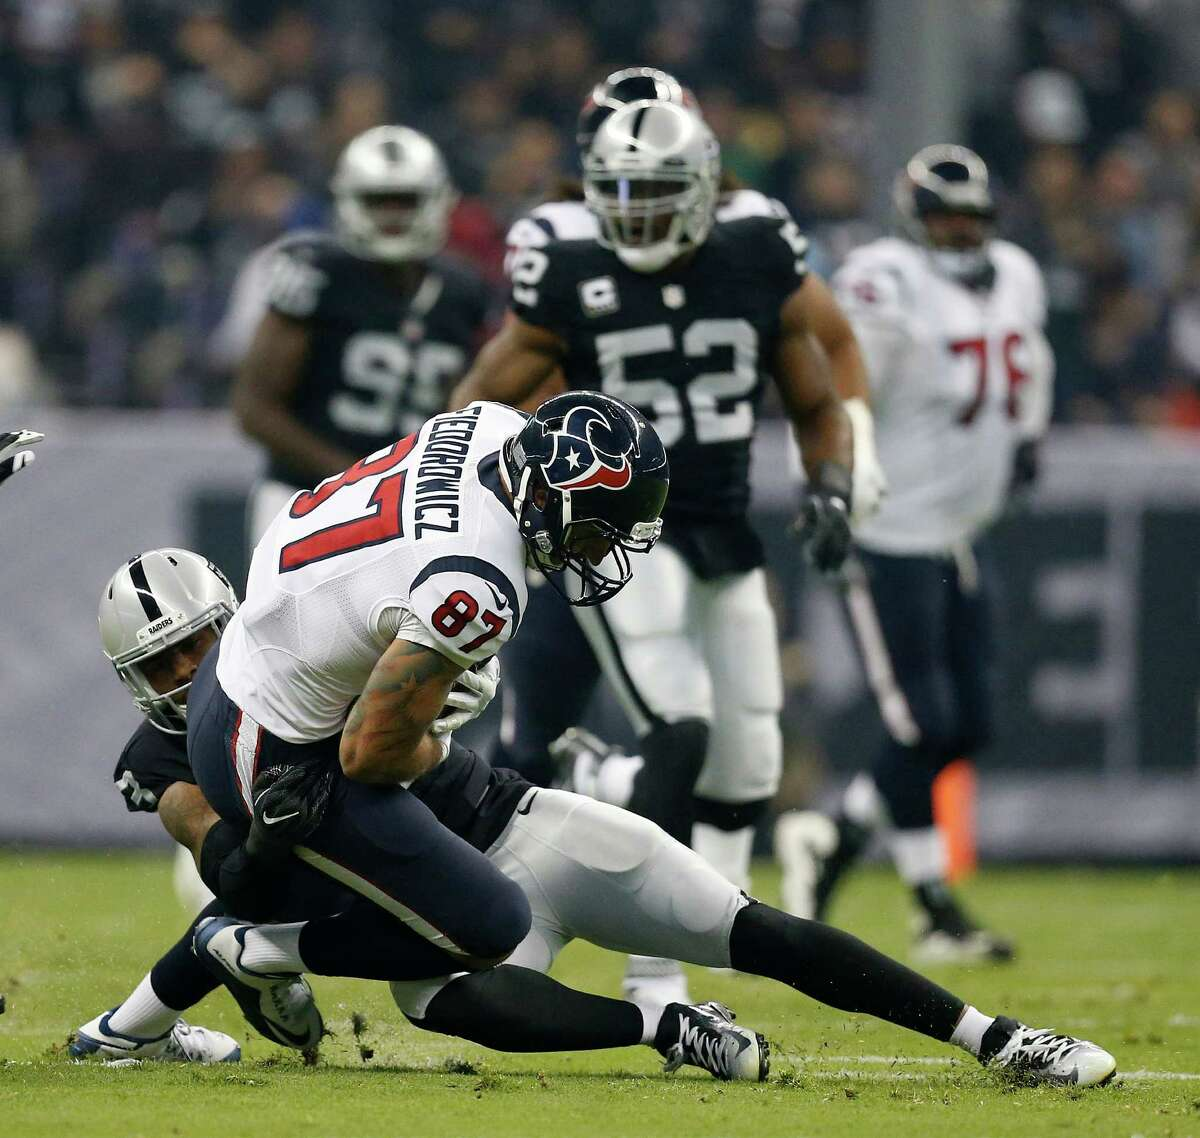 Houston Texans tight end C.J. Fiedorowicz (87) is brought down after a catching a pass during the first quarter of an NFL football game at Estadio Azteca on Monday, Nov. 21, 2016, in Mexico City.